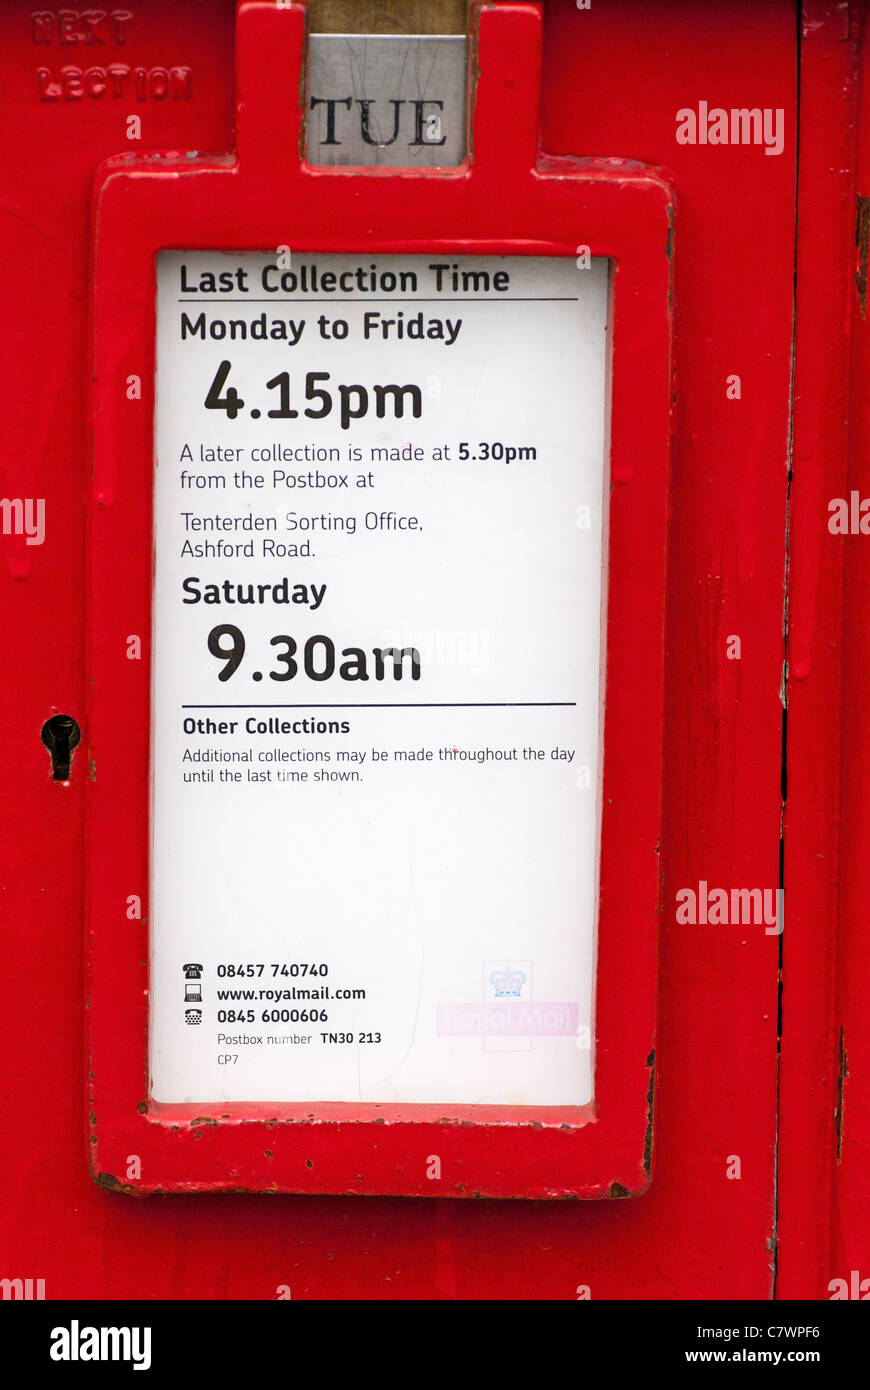 Royal Mail Letter Box.Collection Times On A Red Royal Mail Postbox Postbox Post